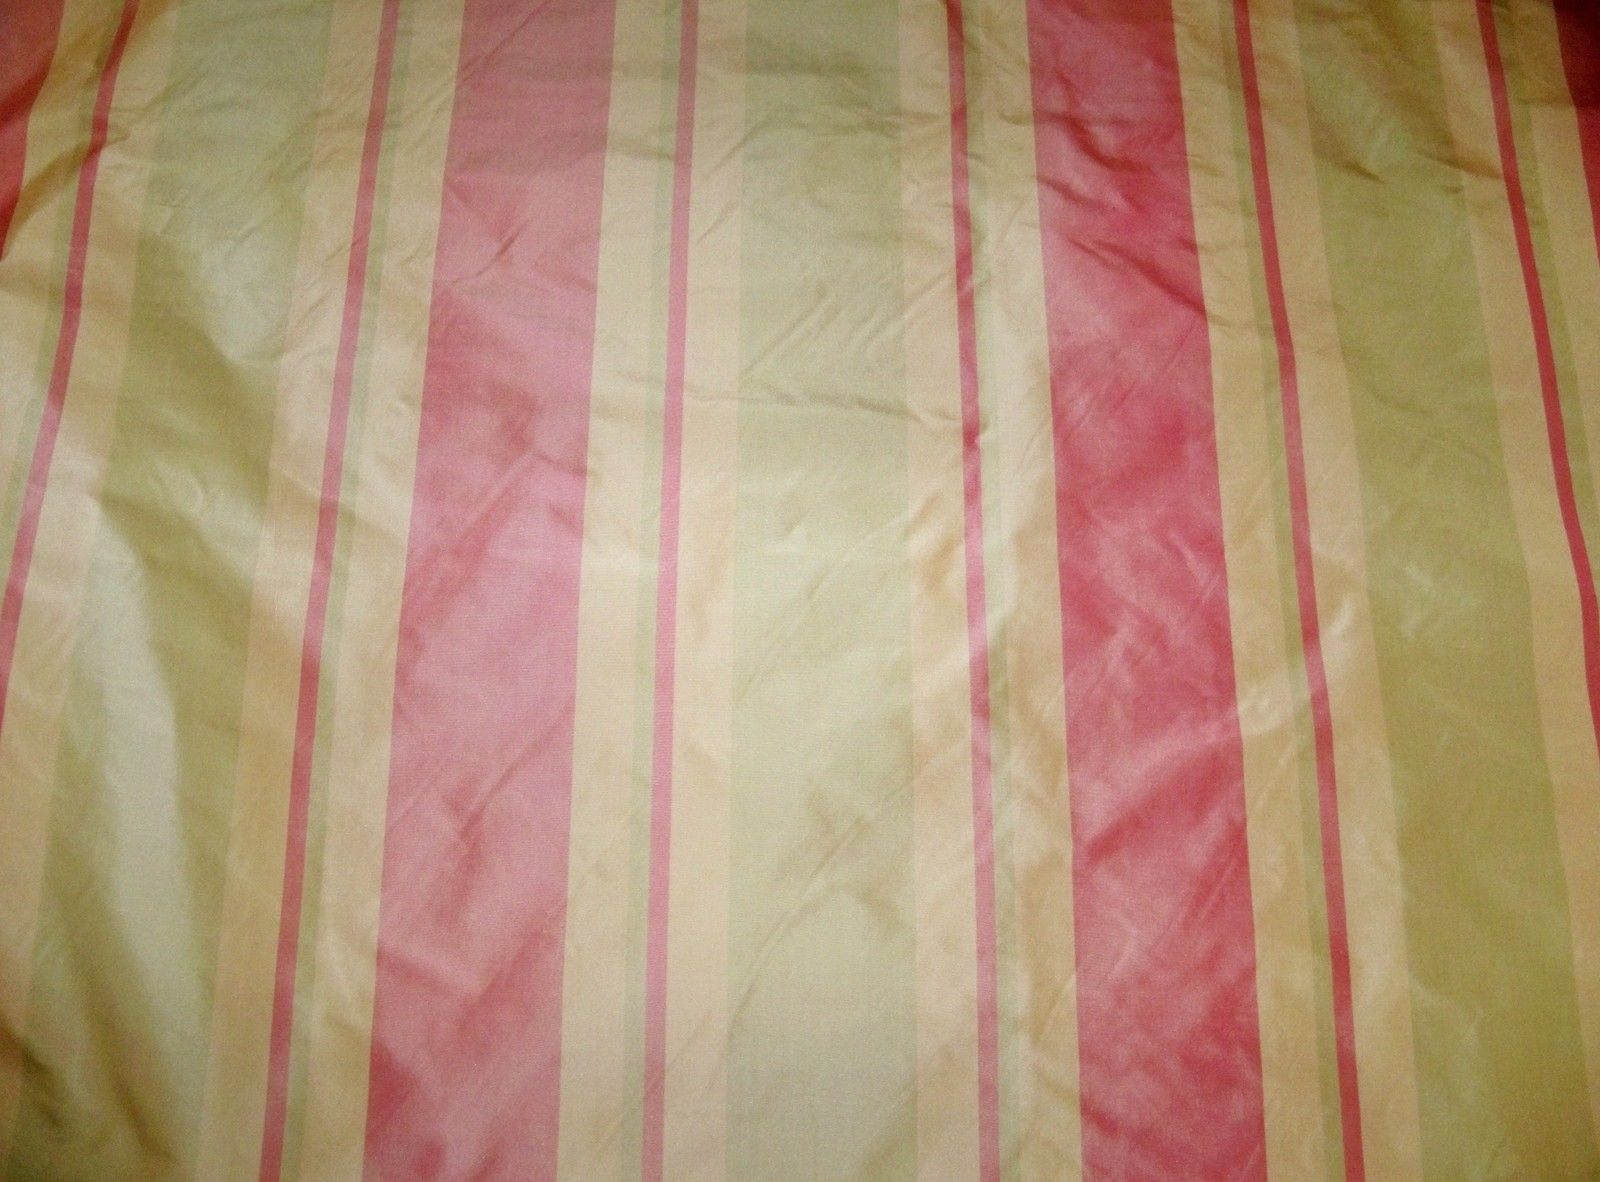 Silk Loom Primavera Stripes Silk Taffeta Fabric Rose Pink